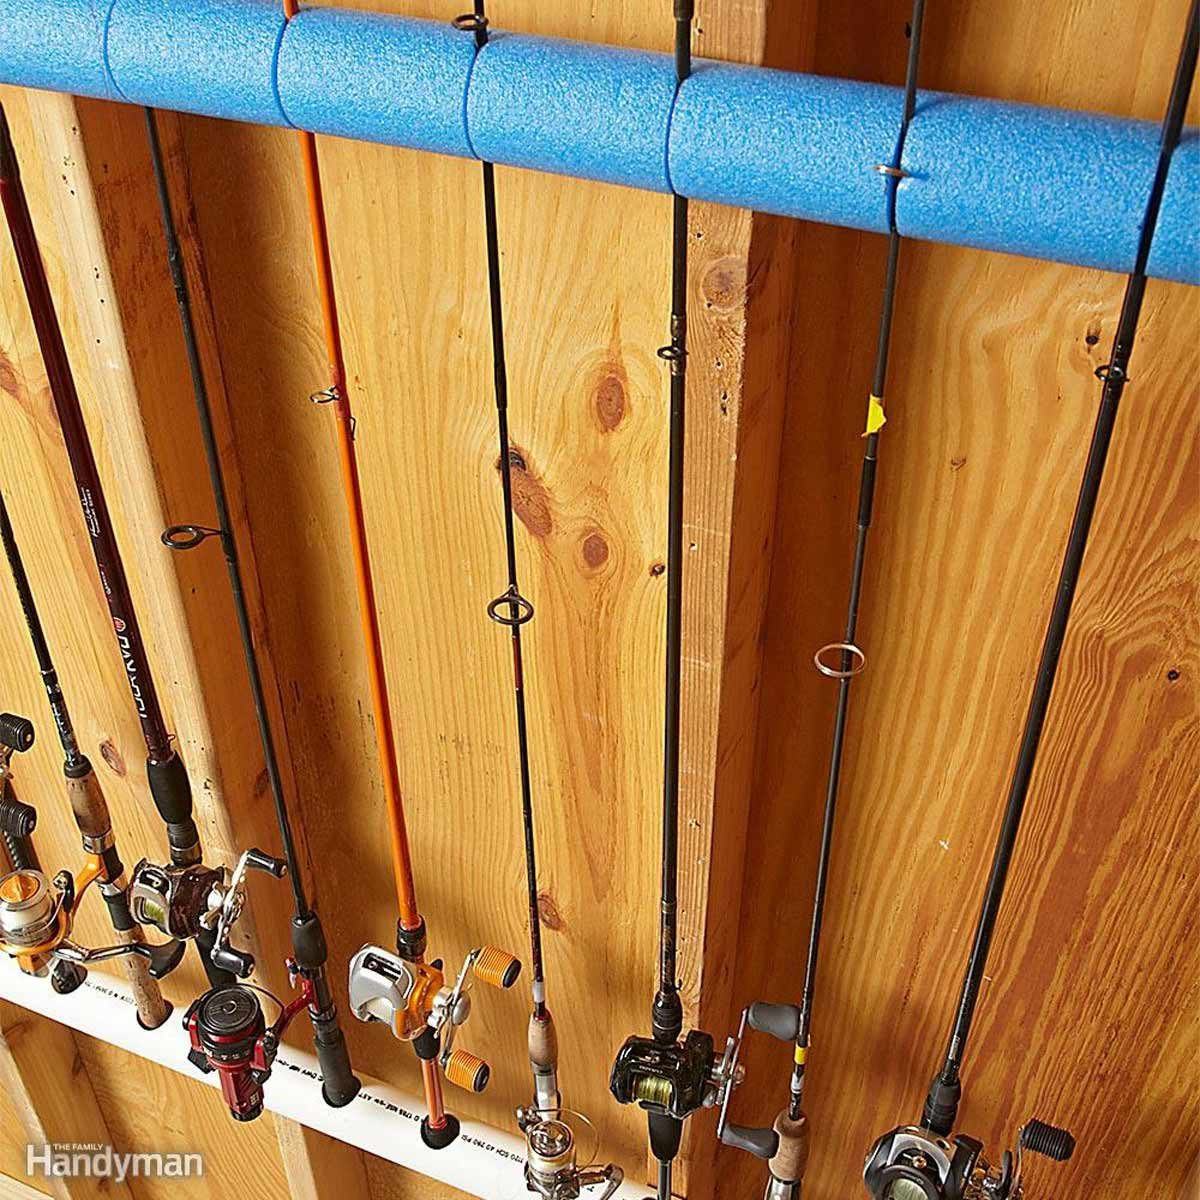 fishing rod pvc organizer